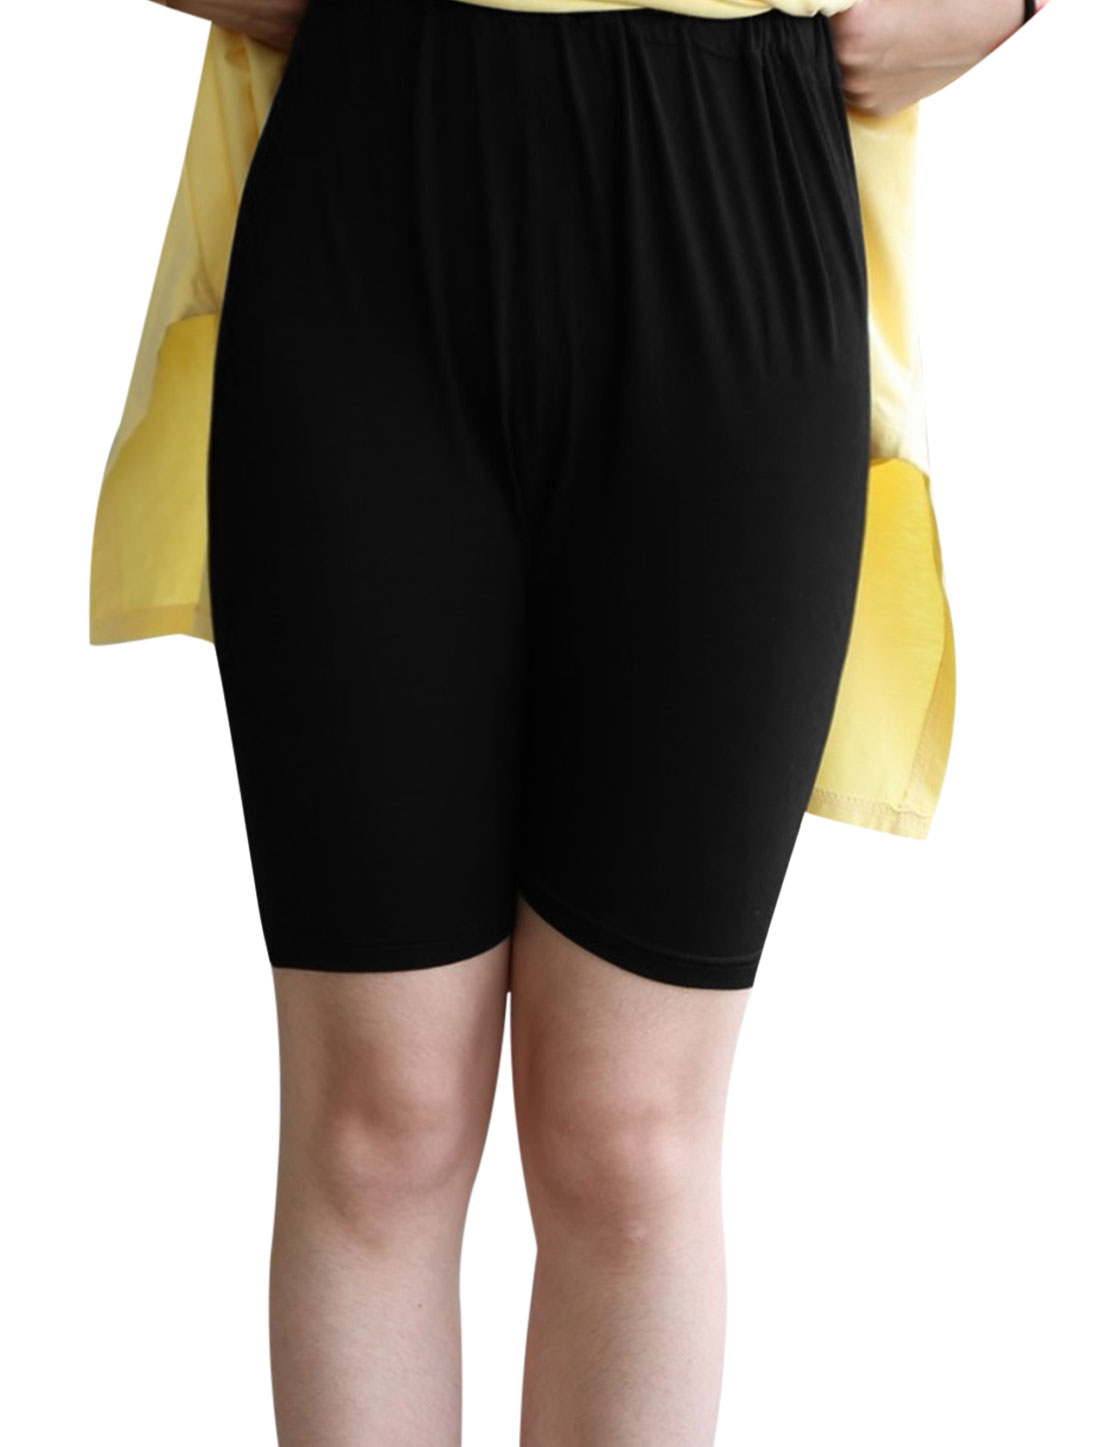 Cozy Fit Fashion Drawstring Button Adjustable Waist Shorts for Maternity Black XS